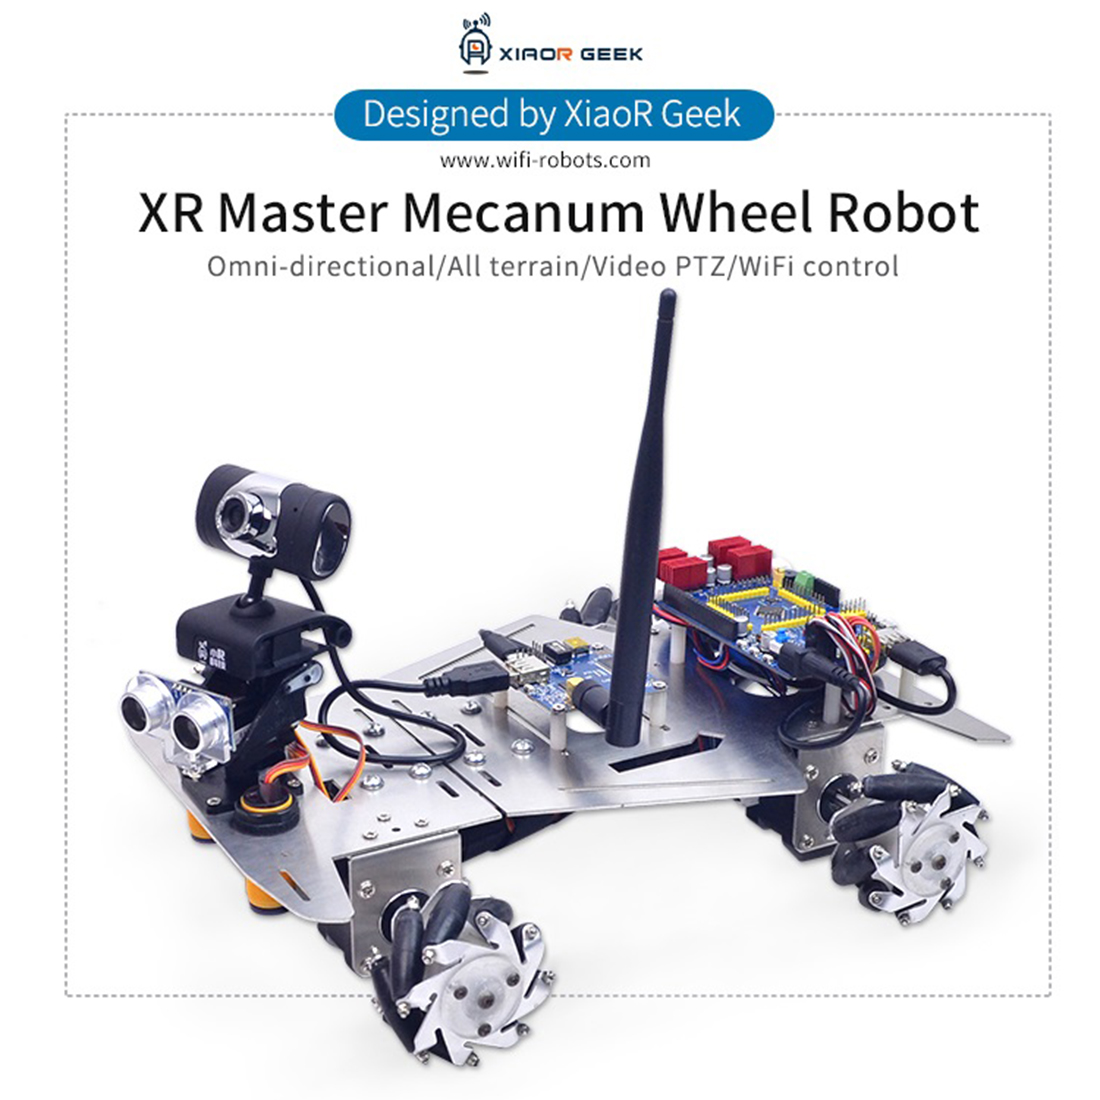 XR Master Omni-Directional Mecanum Wheel Robot Programmable Toys Games For Children Adult Creative Gift- WIFI Version